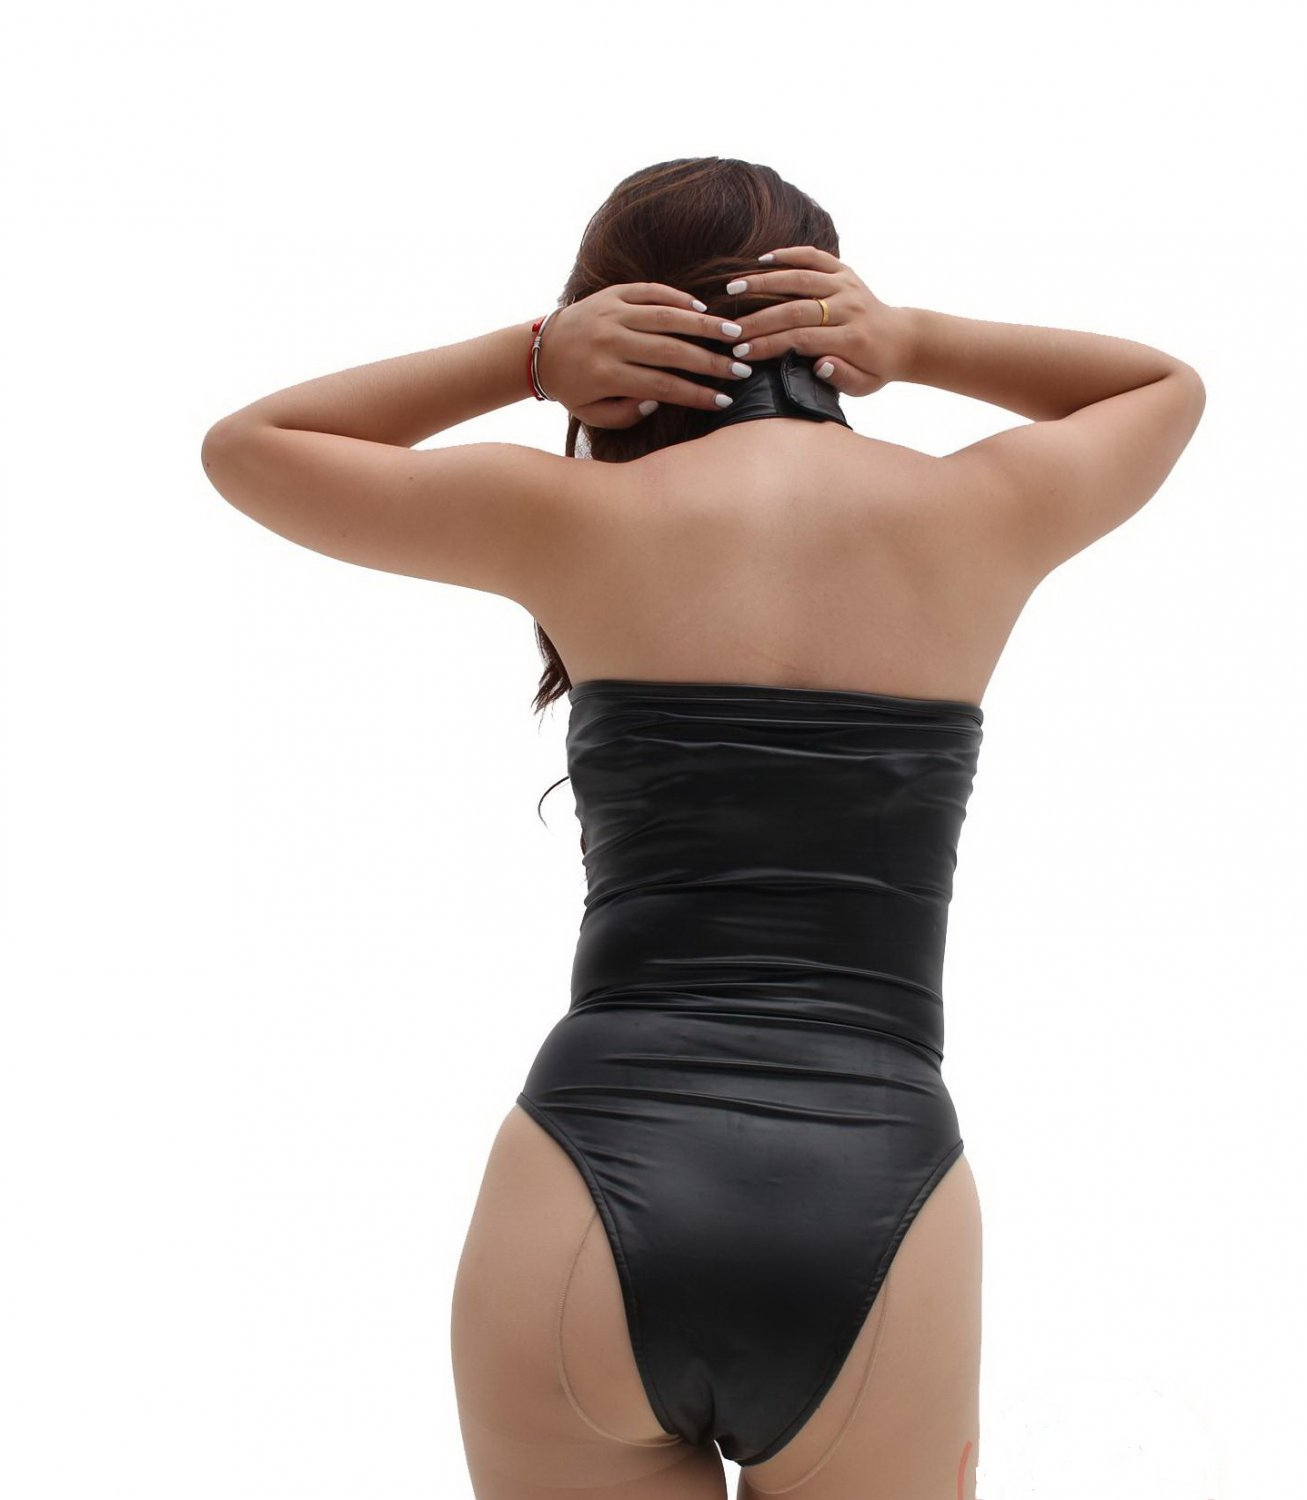 Customized women's Sexy lingerie halter backless one piece Latex ammonia body shapers bodysuit #M83